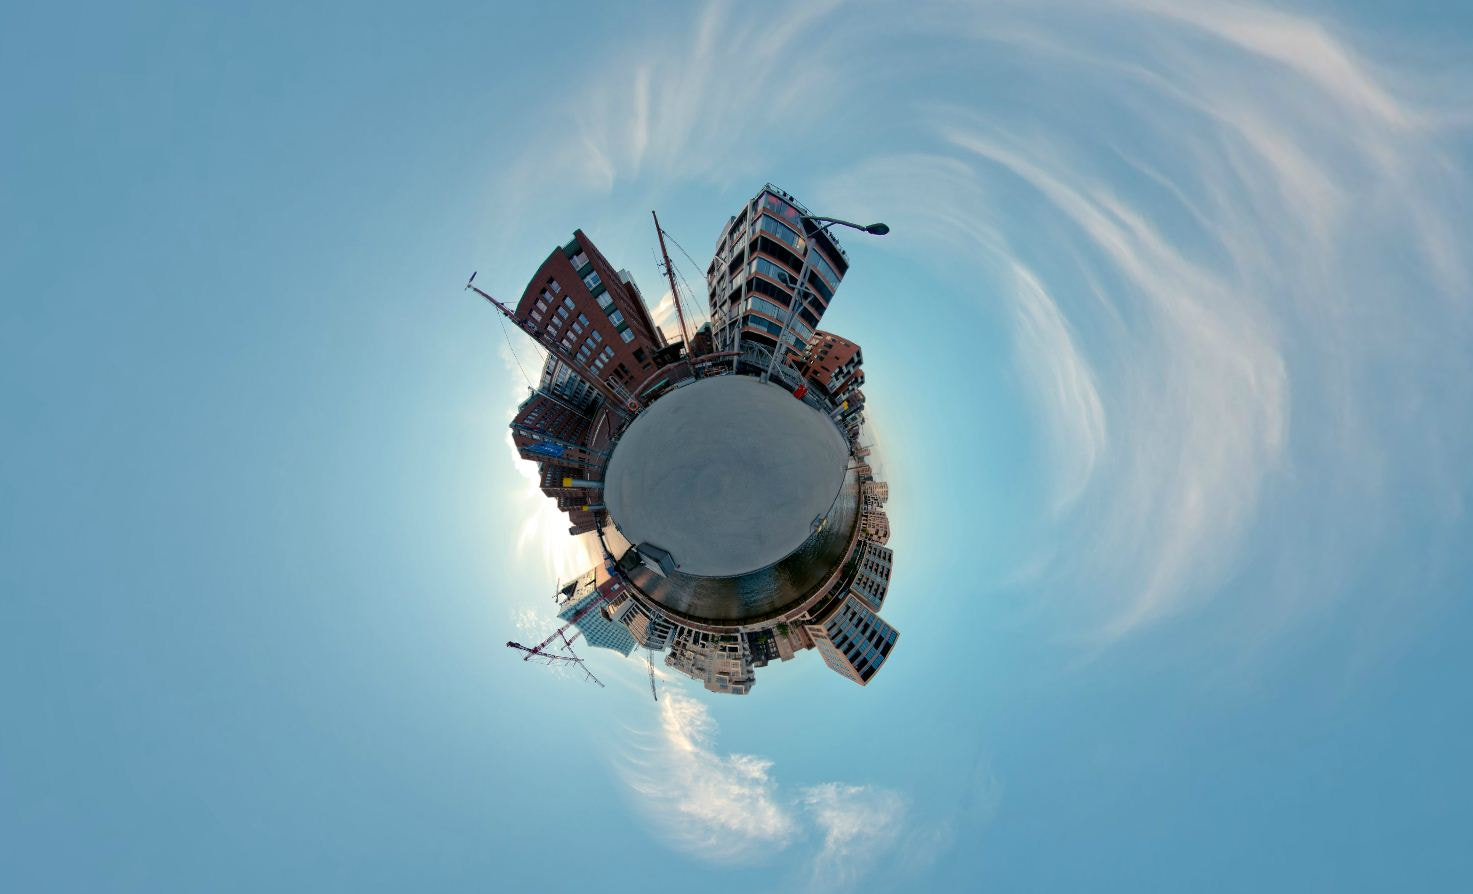 Photograph Little PLanet HafenCity Hamburg by Thorsten Veith on 500px